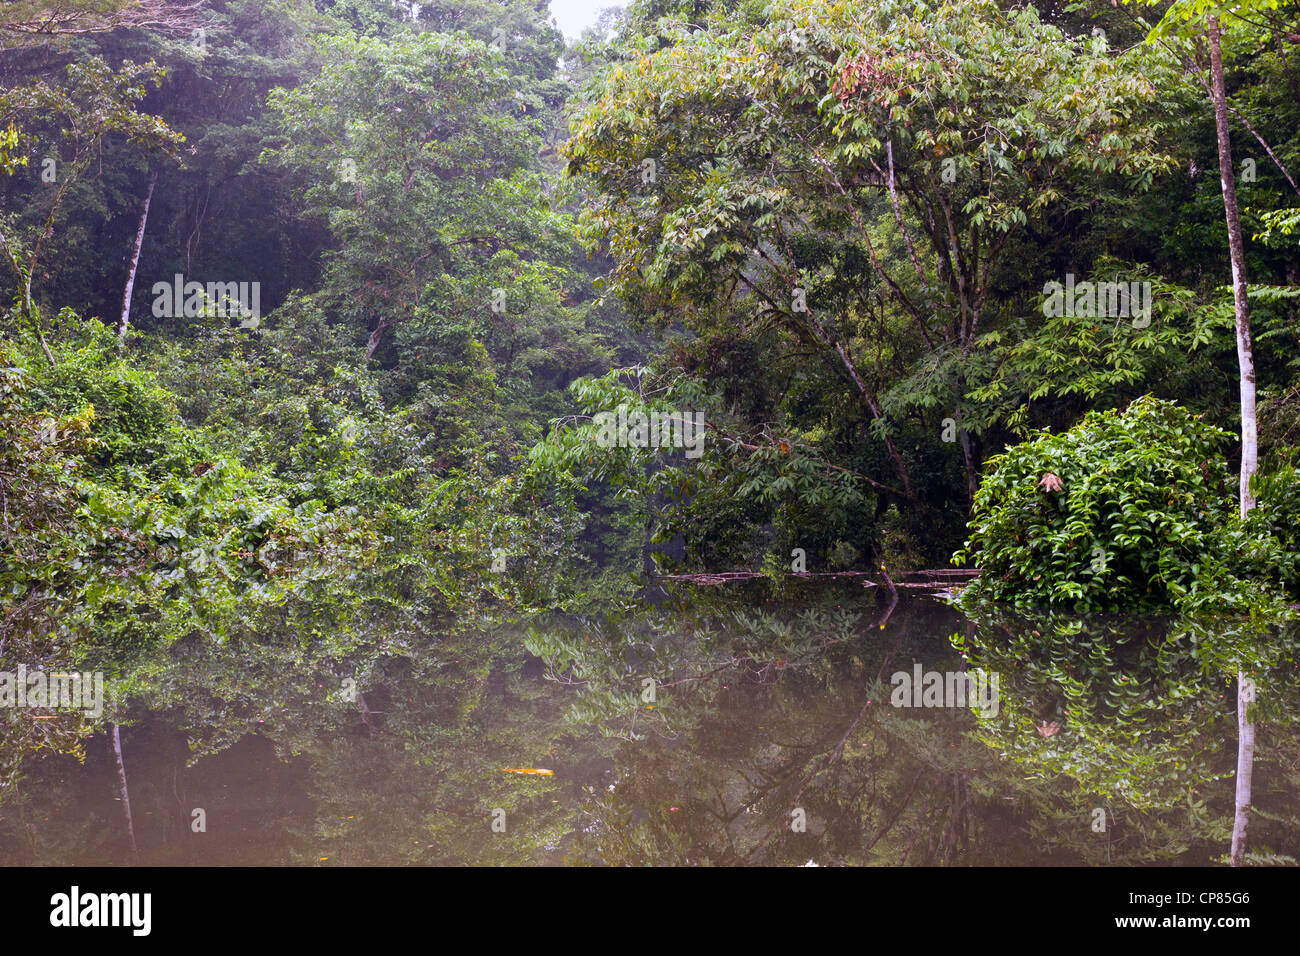 An oxbow lake (an old meander cut off from the main river) beside the rio Tiputini in the Ecuadorian Amazon - Stock Image